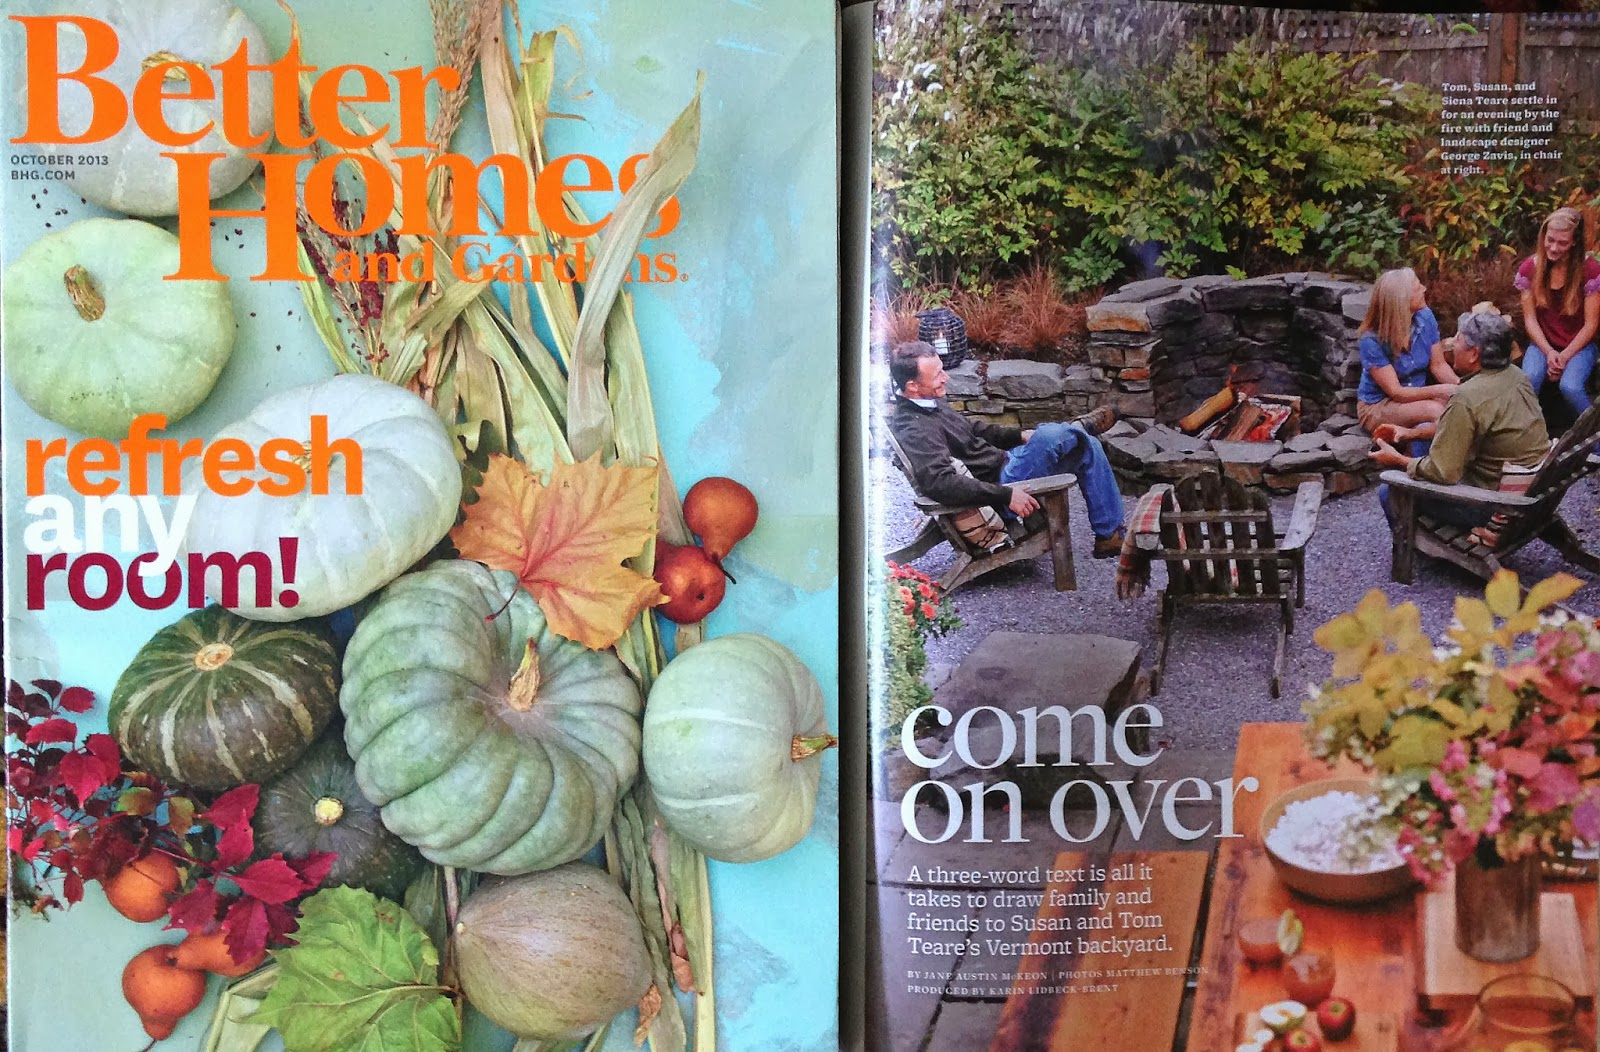 Better homes and gardens october 2013 issue susan teare Better homes gardens tv show recipes